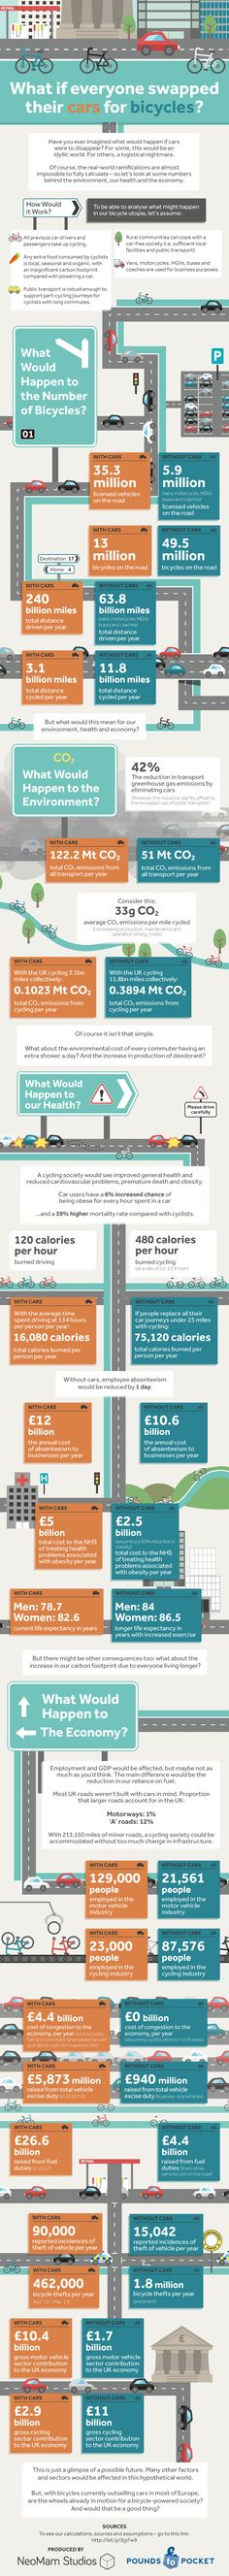 What if everyone swapped their cars for bicycles? Cleaner air, better health, and more productivity at work — these are just a few of the perks we would all enjoy if there were more bikes and fewer cars on the road.